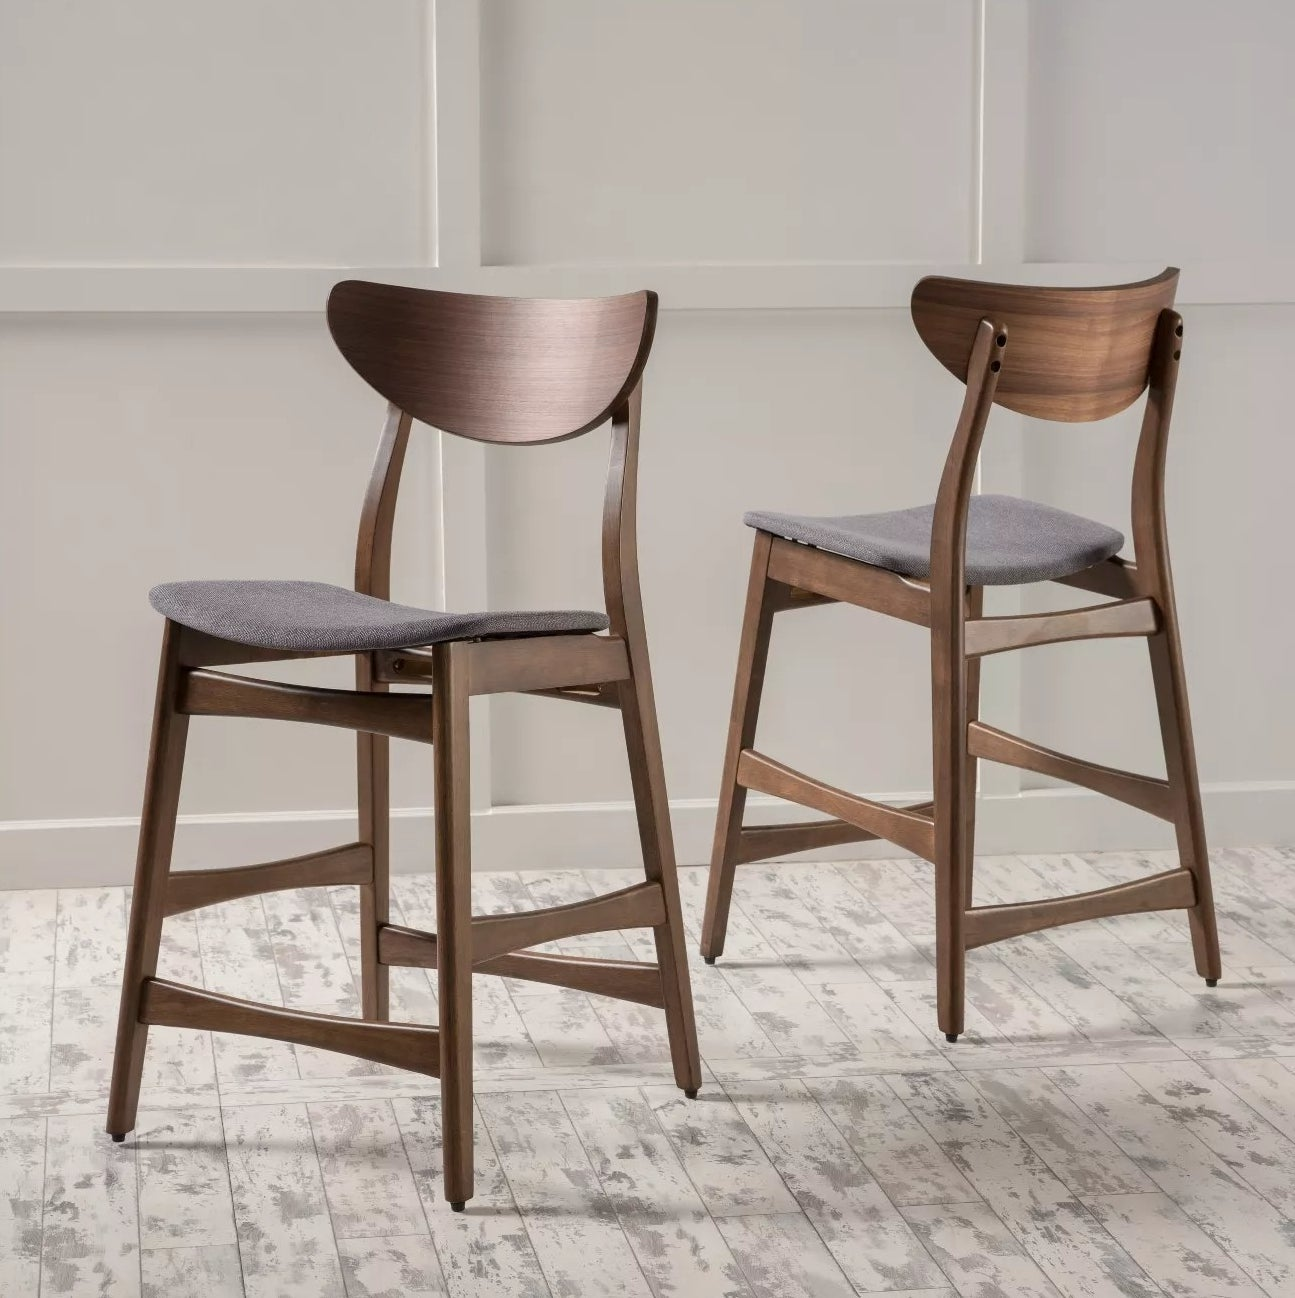 A pair of wood stools with dark gray, fabric-covered seats